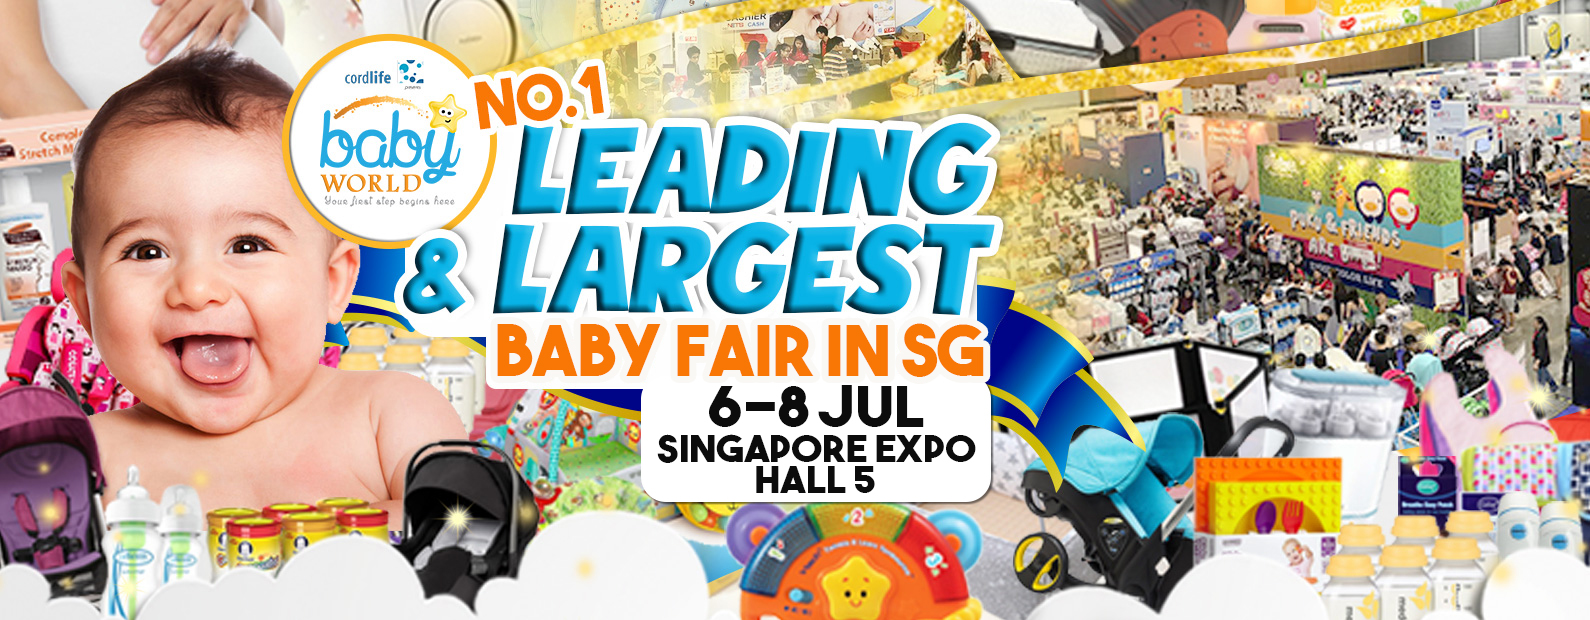 NO.1 LEADING BABY FAIR